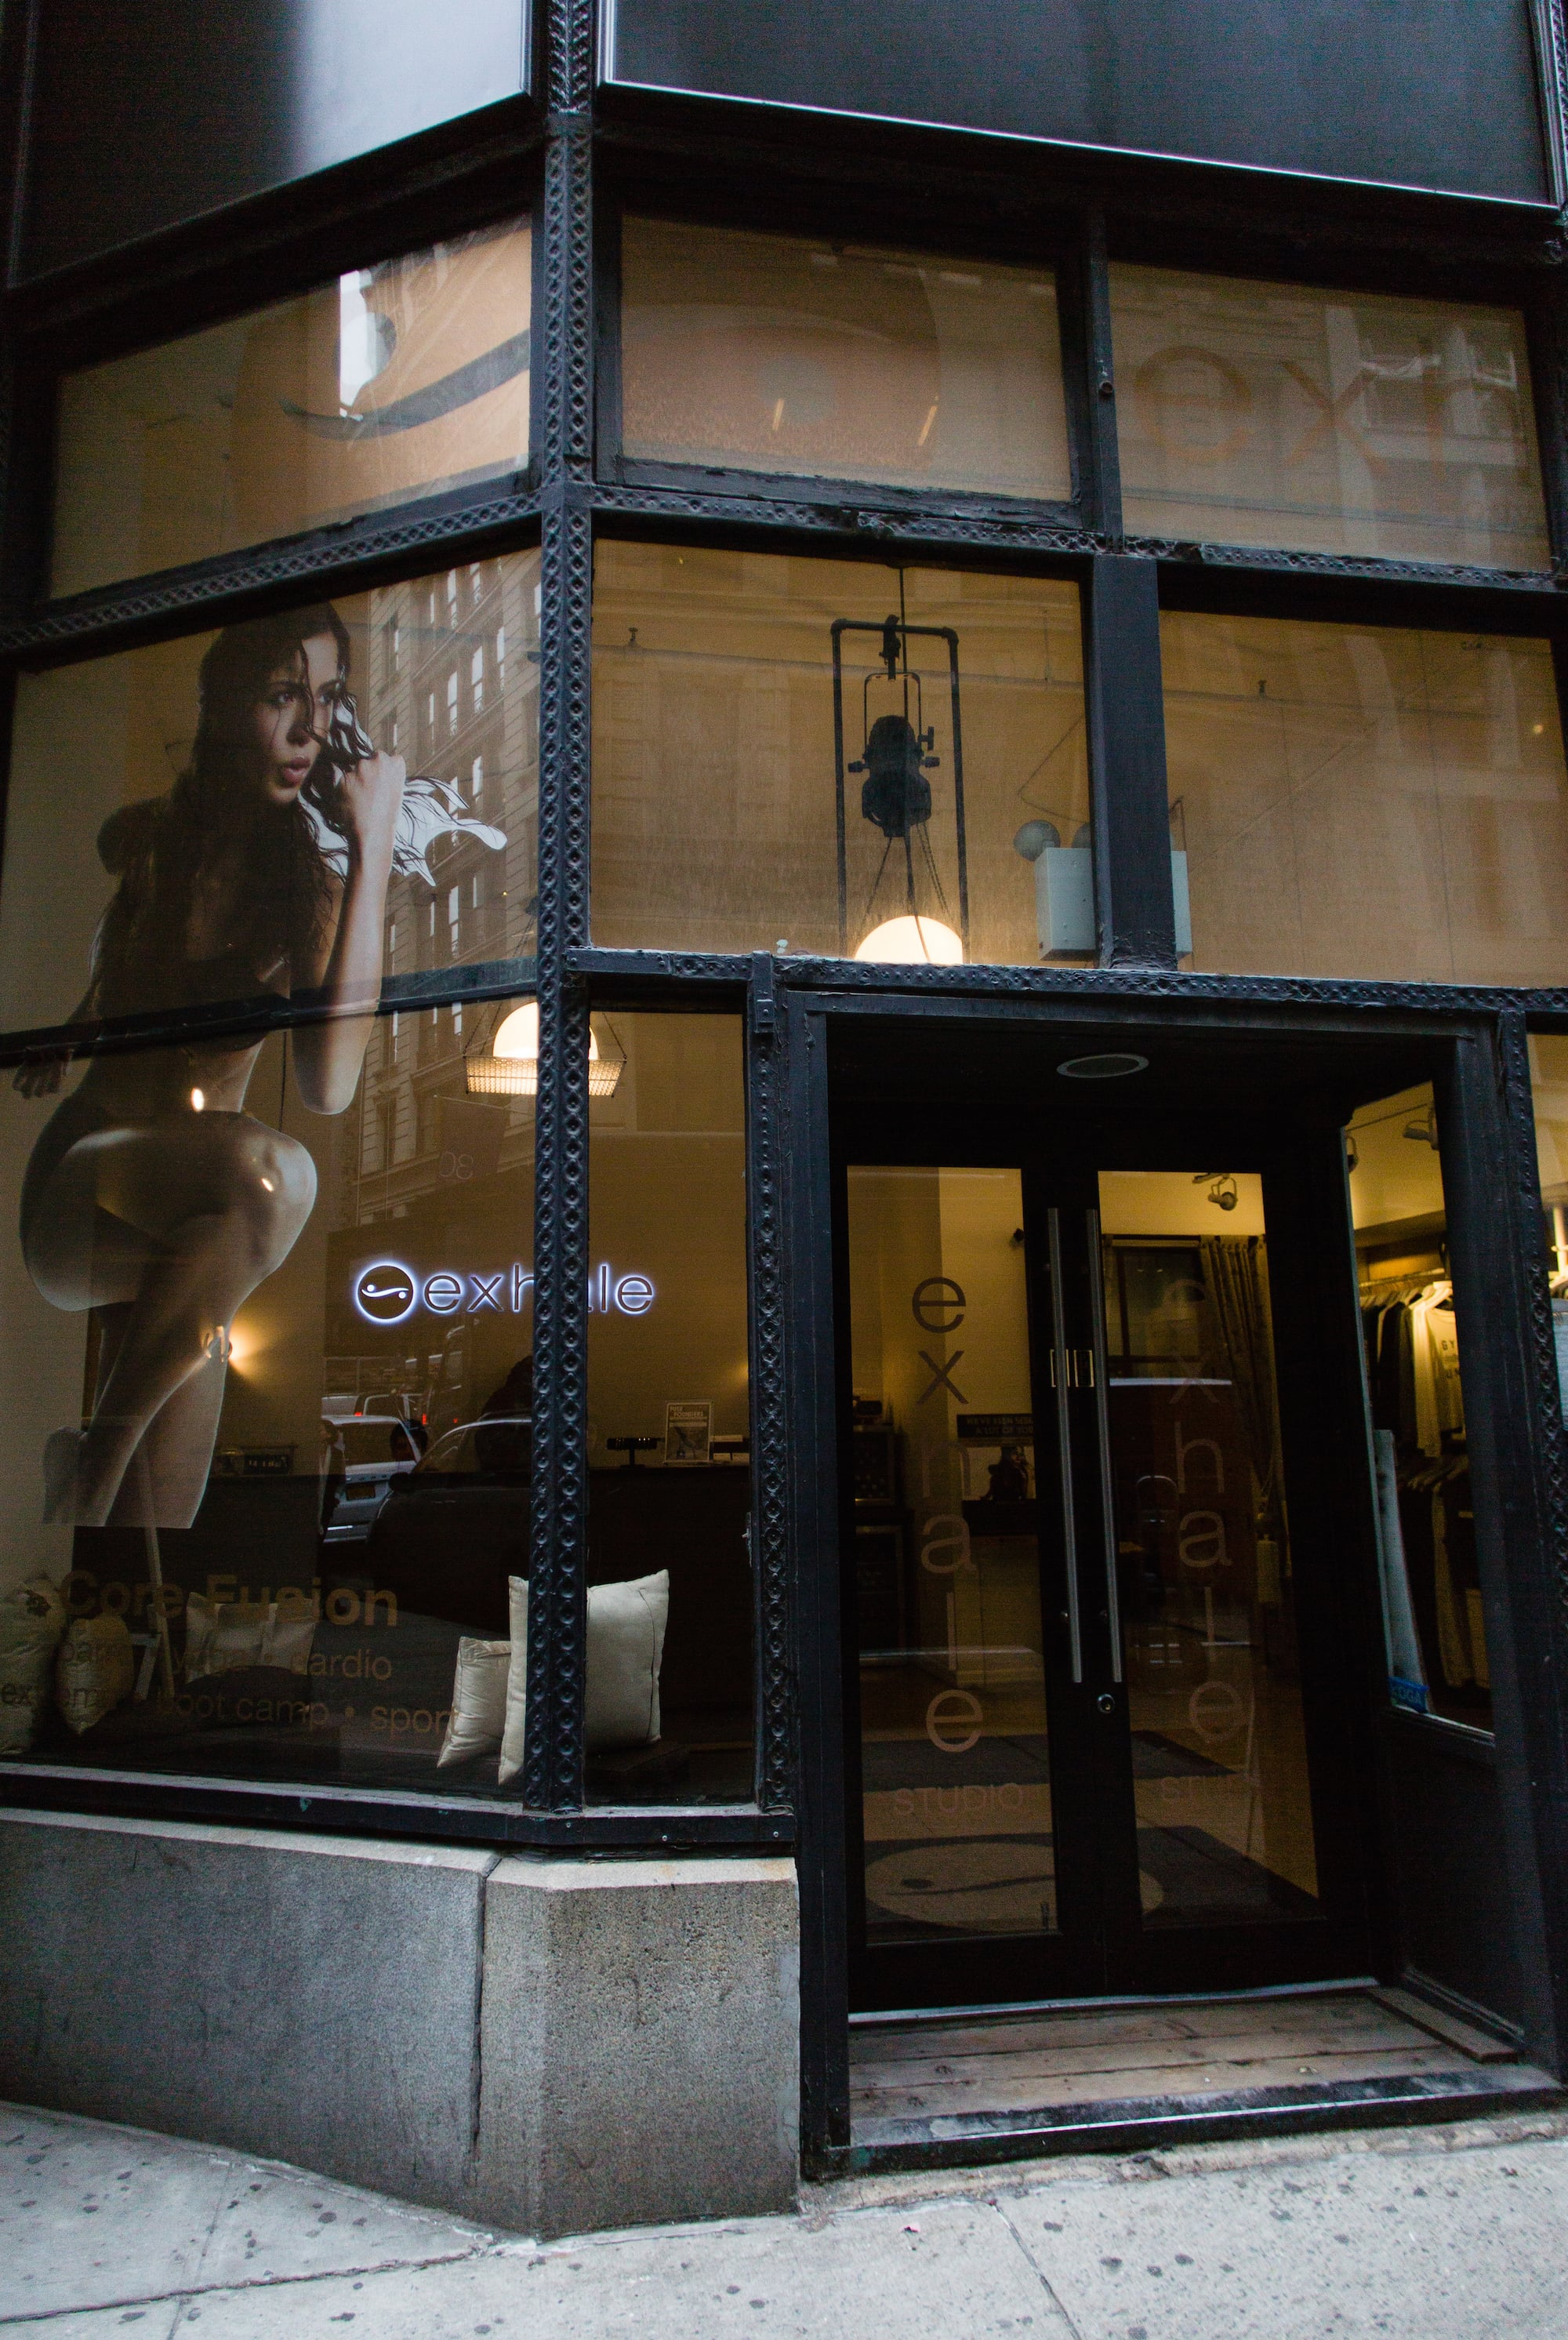 Exhale New York:  19 West 21 Street New York,NY 10010 -Members receive a complimentary week and access to $25 classes, complimentary week and we also have plans to introduce classes at he Brand Assembly Square.